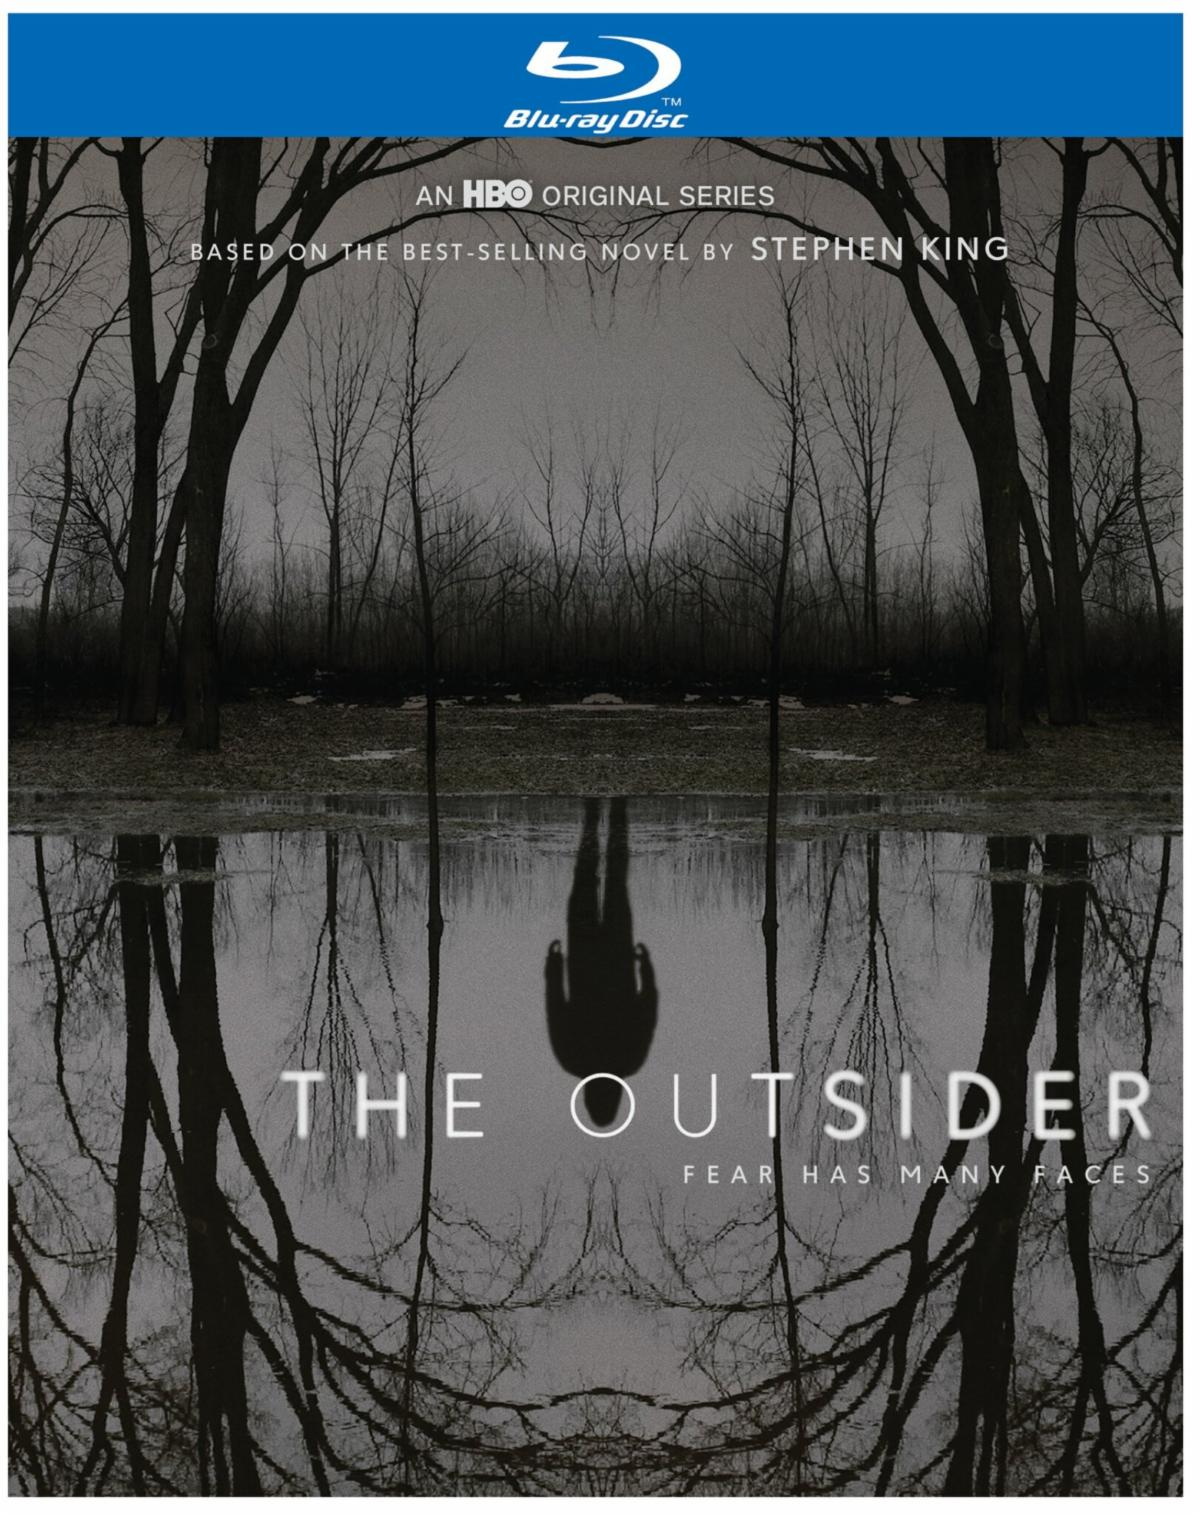 THE OUTSIDER SEASON ONE Blu-ray